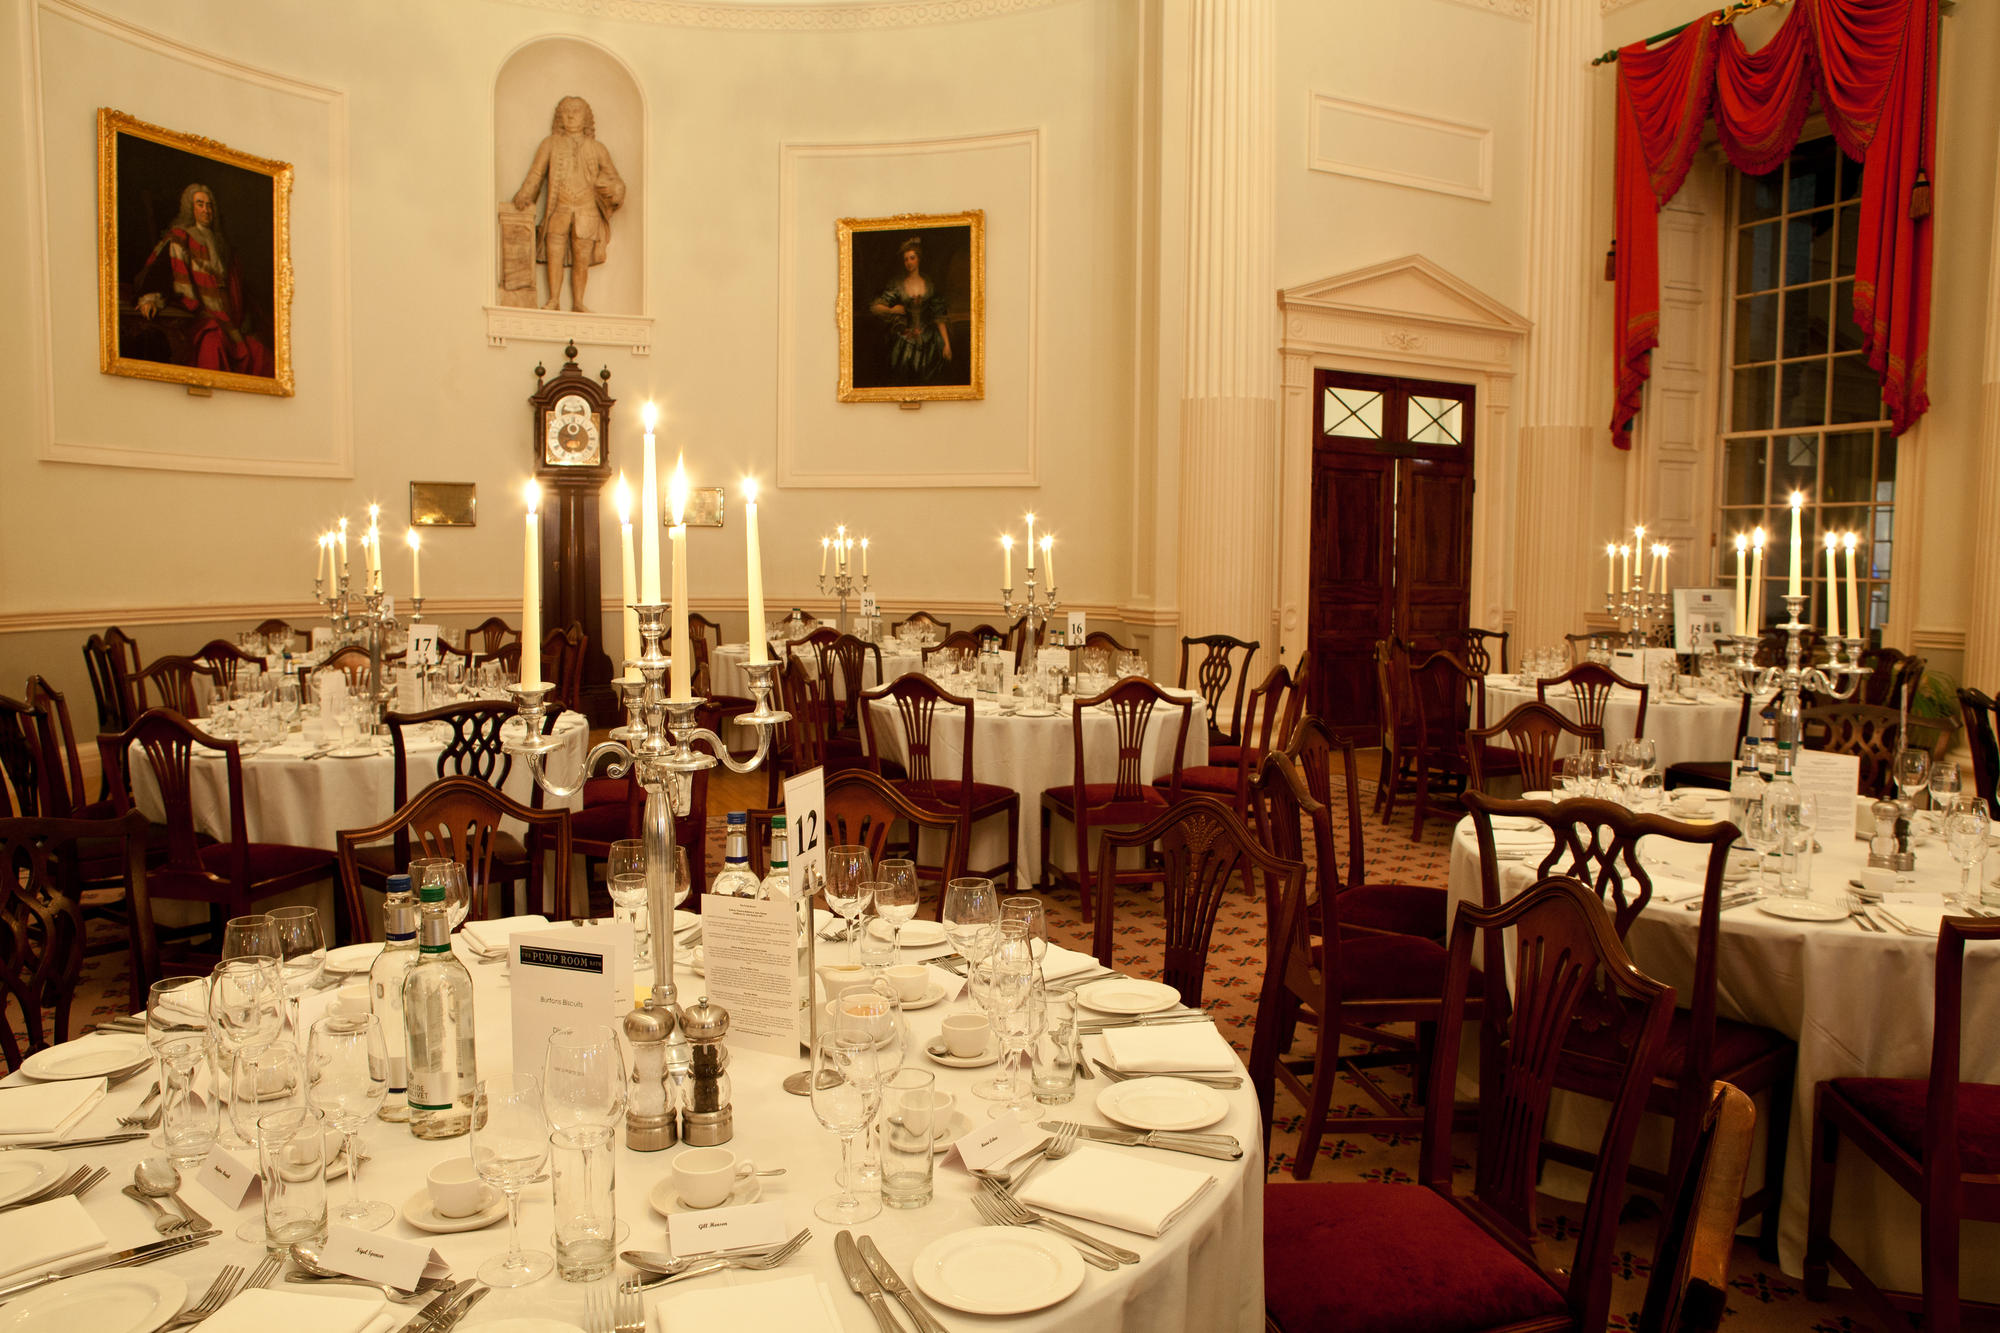 Image: Pump Room set for dinner